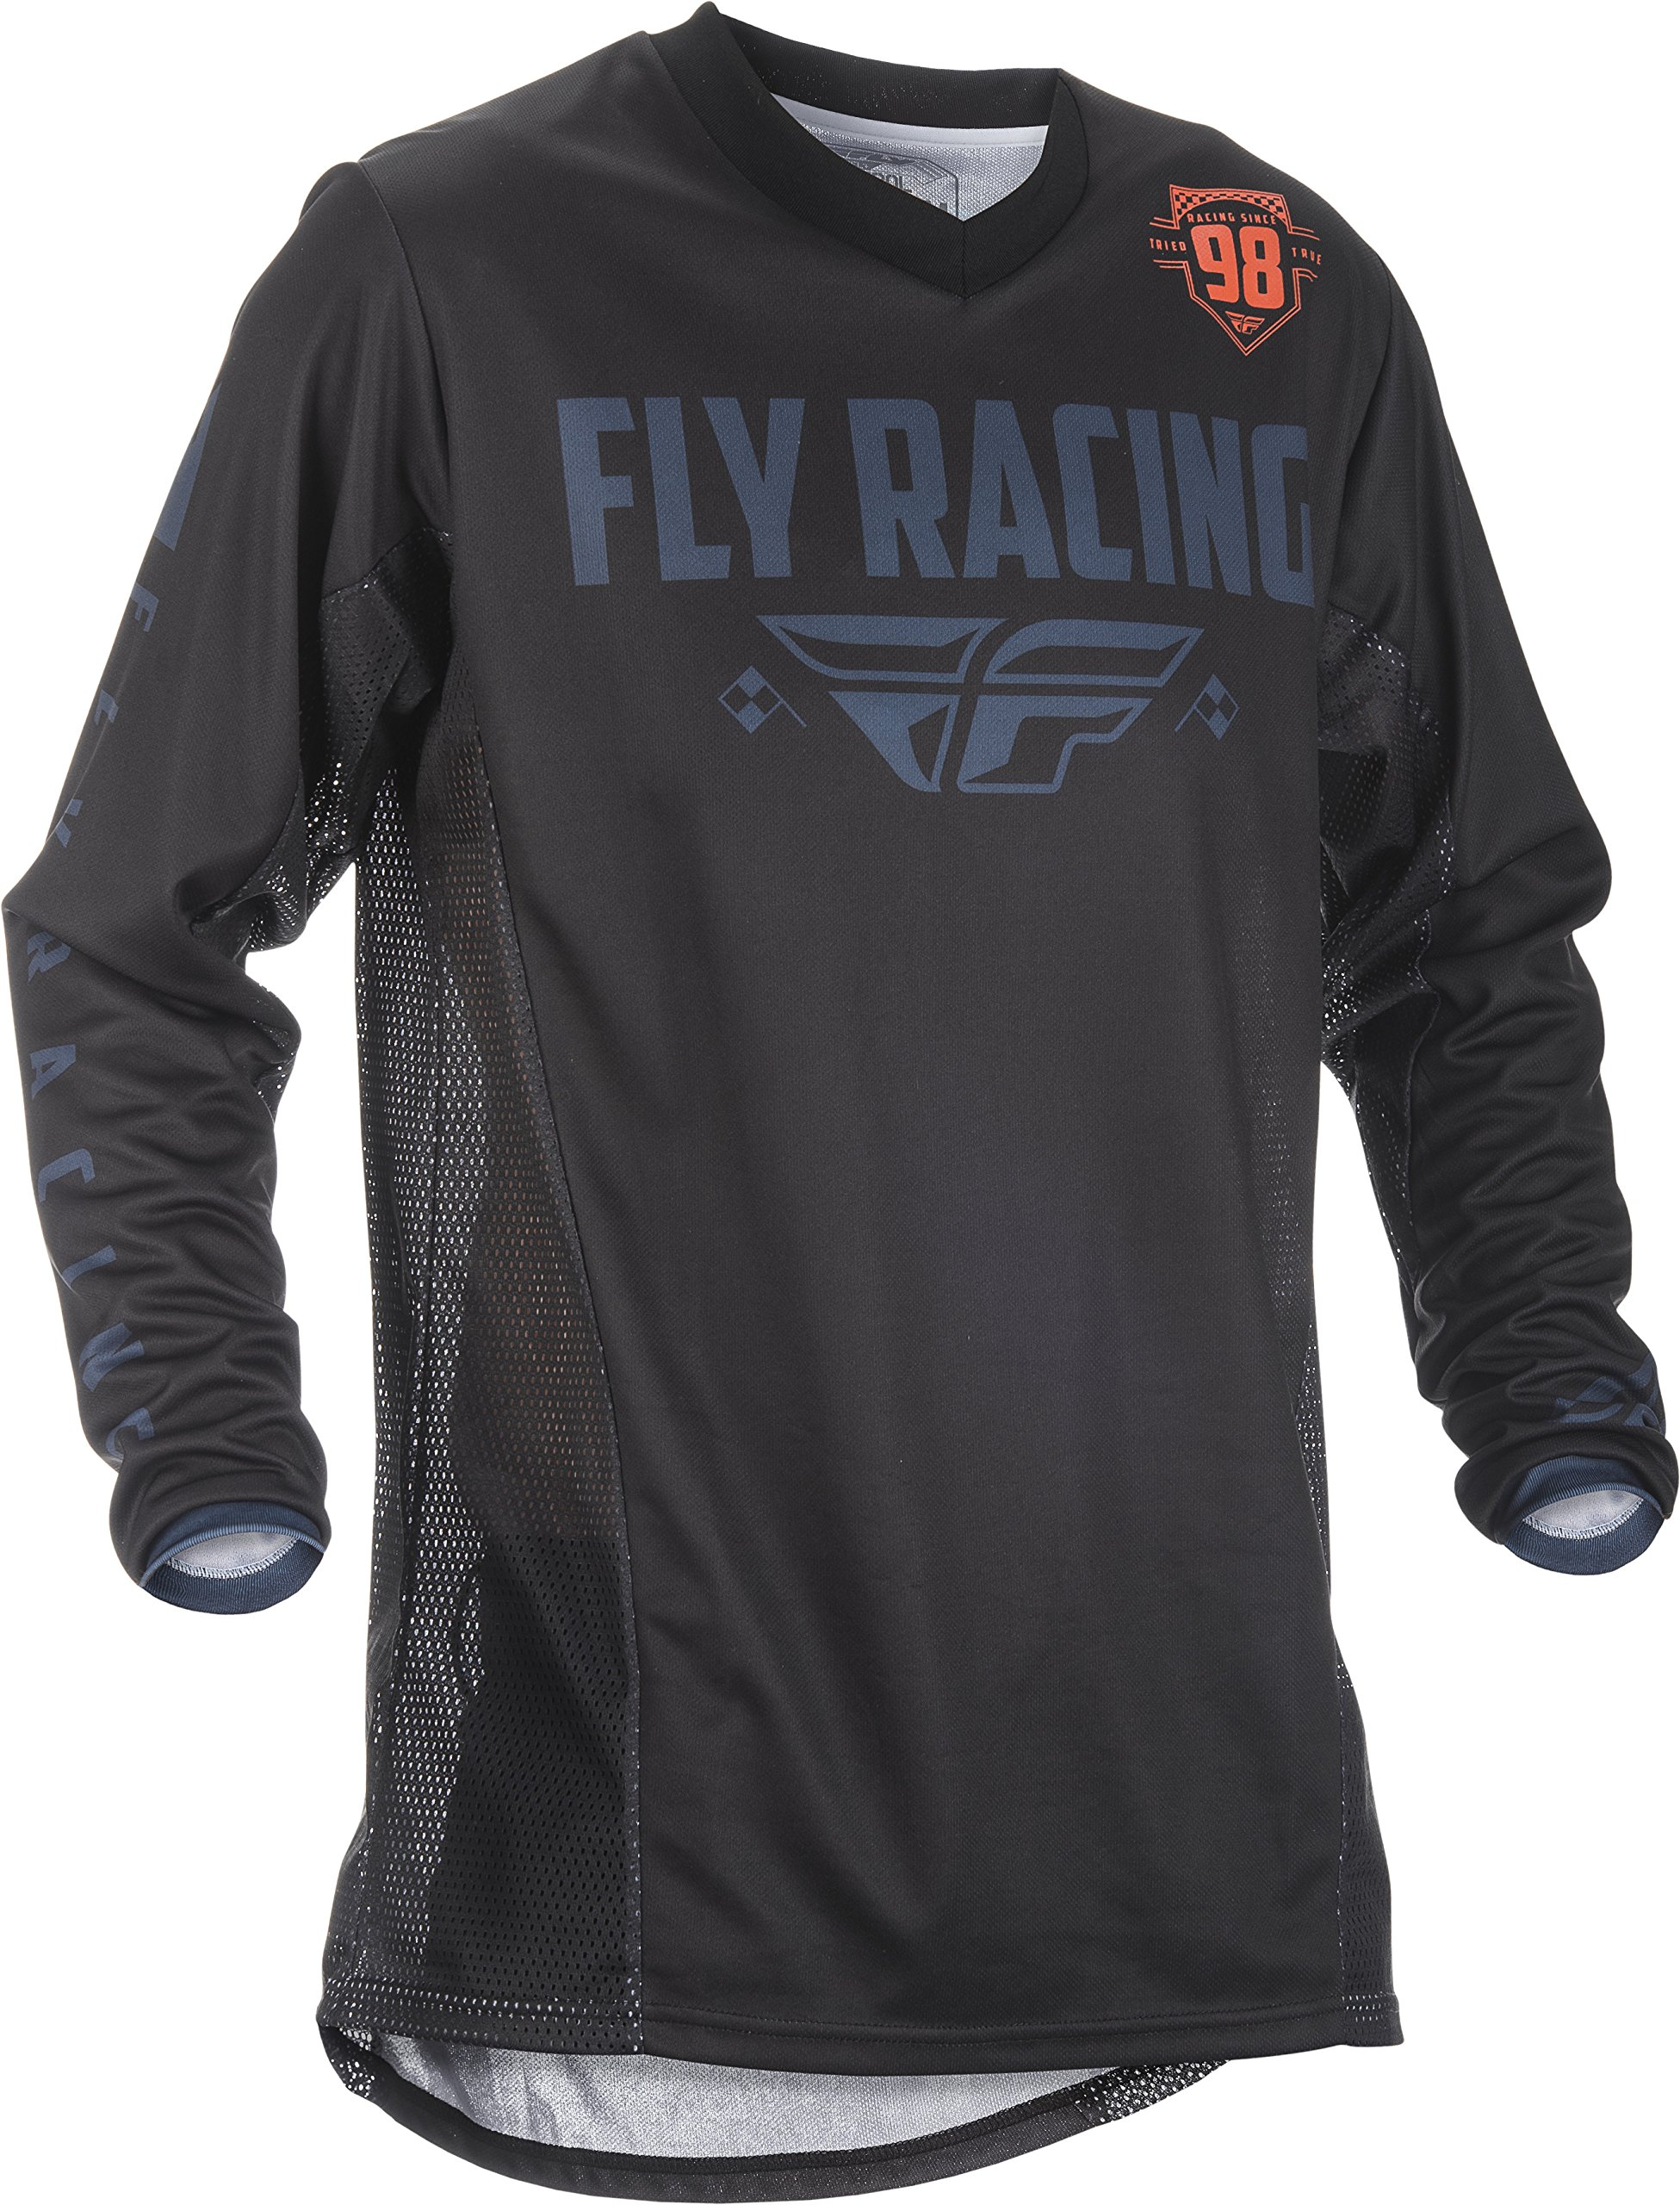 Fly Racing Men's Patrol Jersey (Black/Gray, X-Large)